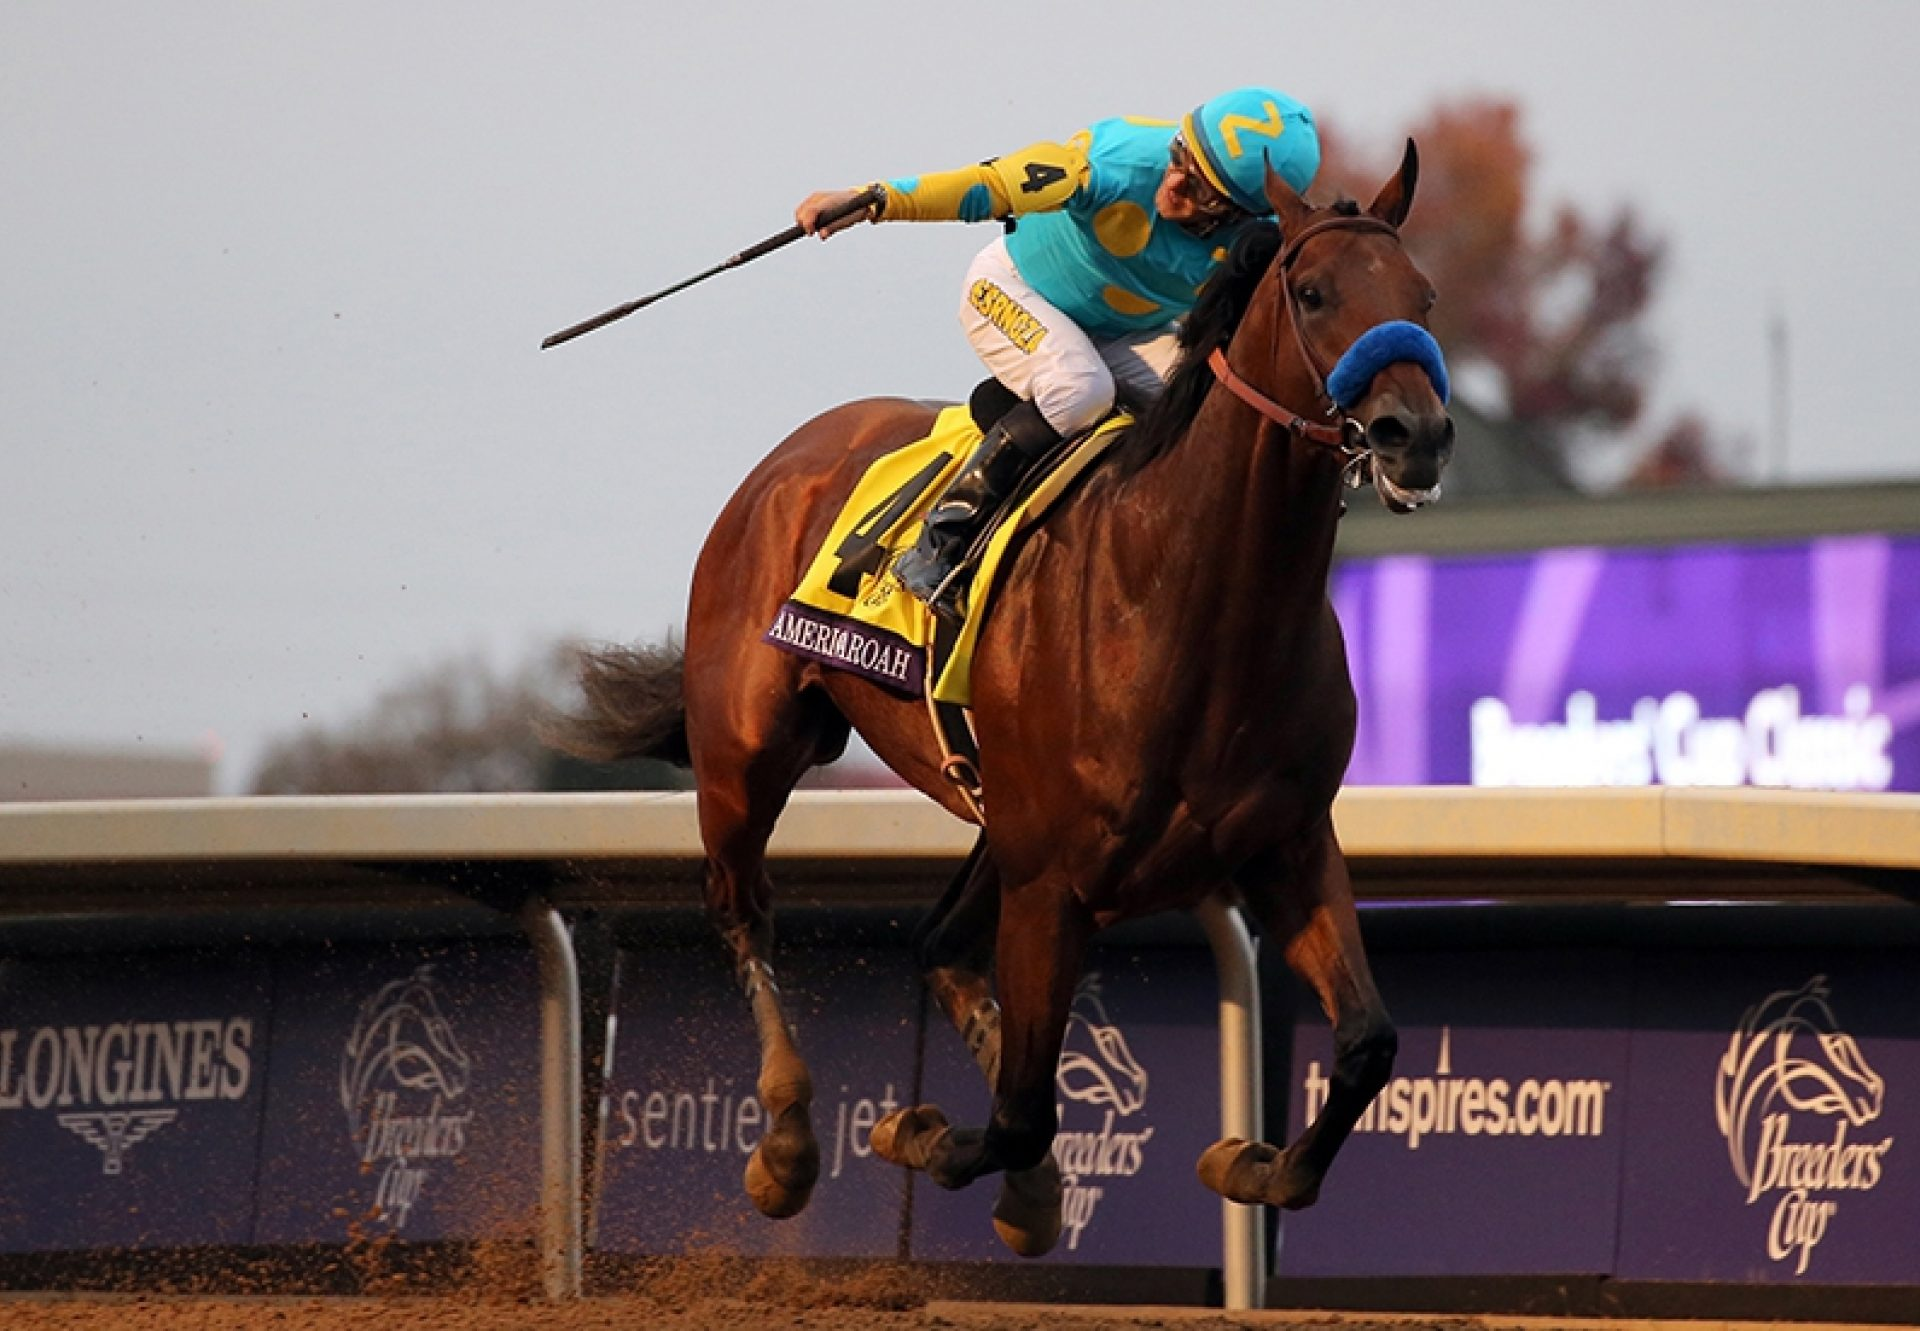 American Pharoah winning the Breeders Cup